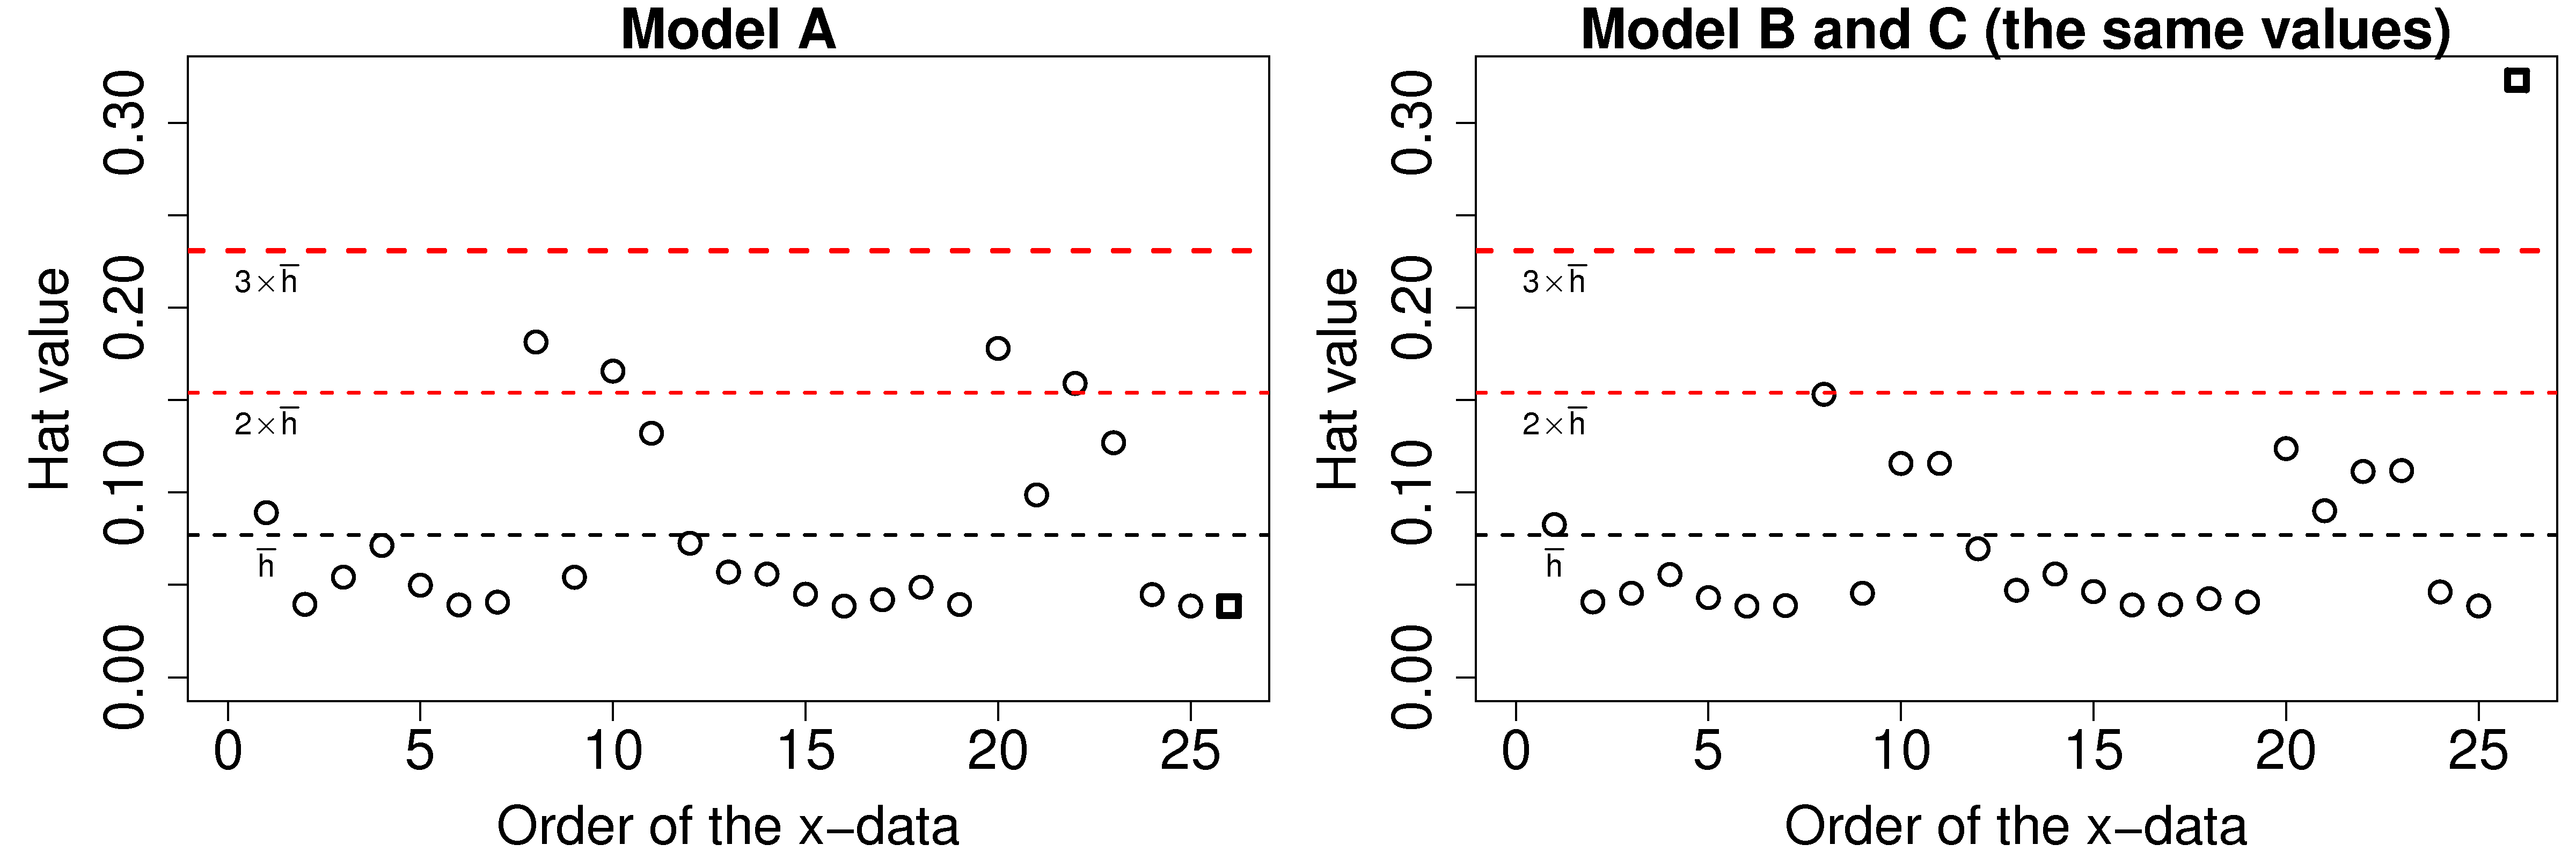 Continuing The Example Of Models A, B And C: The Hat Values For Models B  And C Are The Same, And Are Shown Here The Last Point Has Very High  Leverage